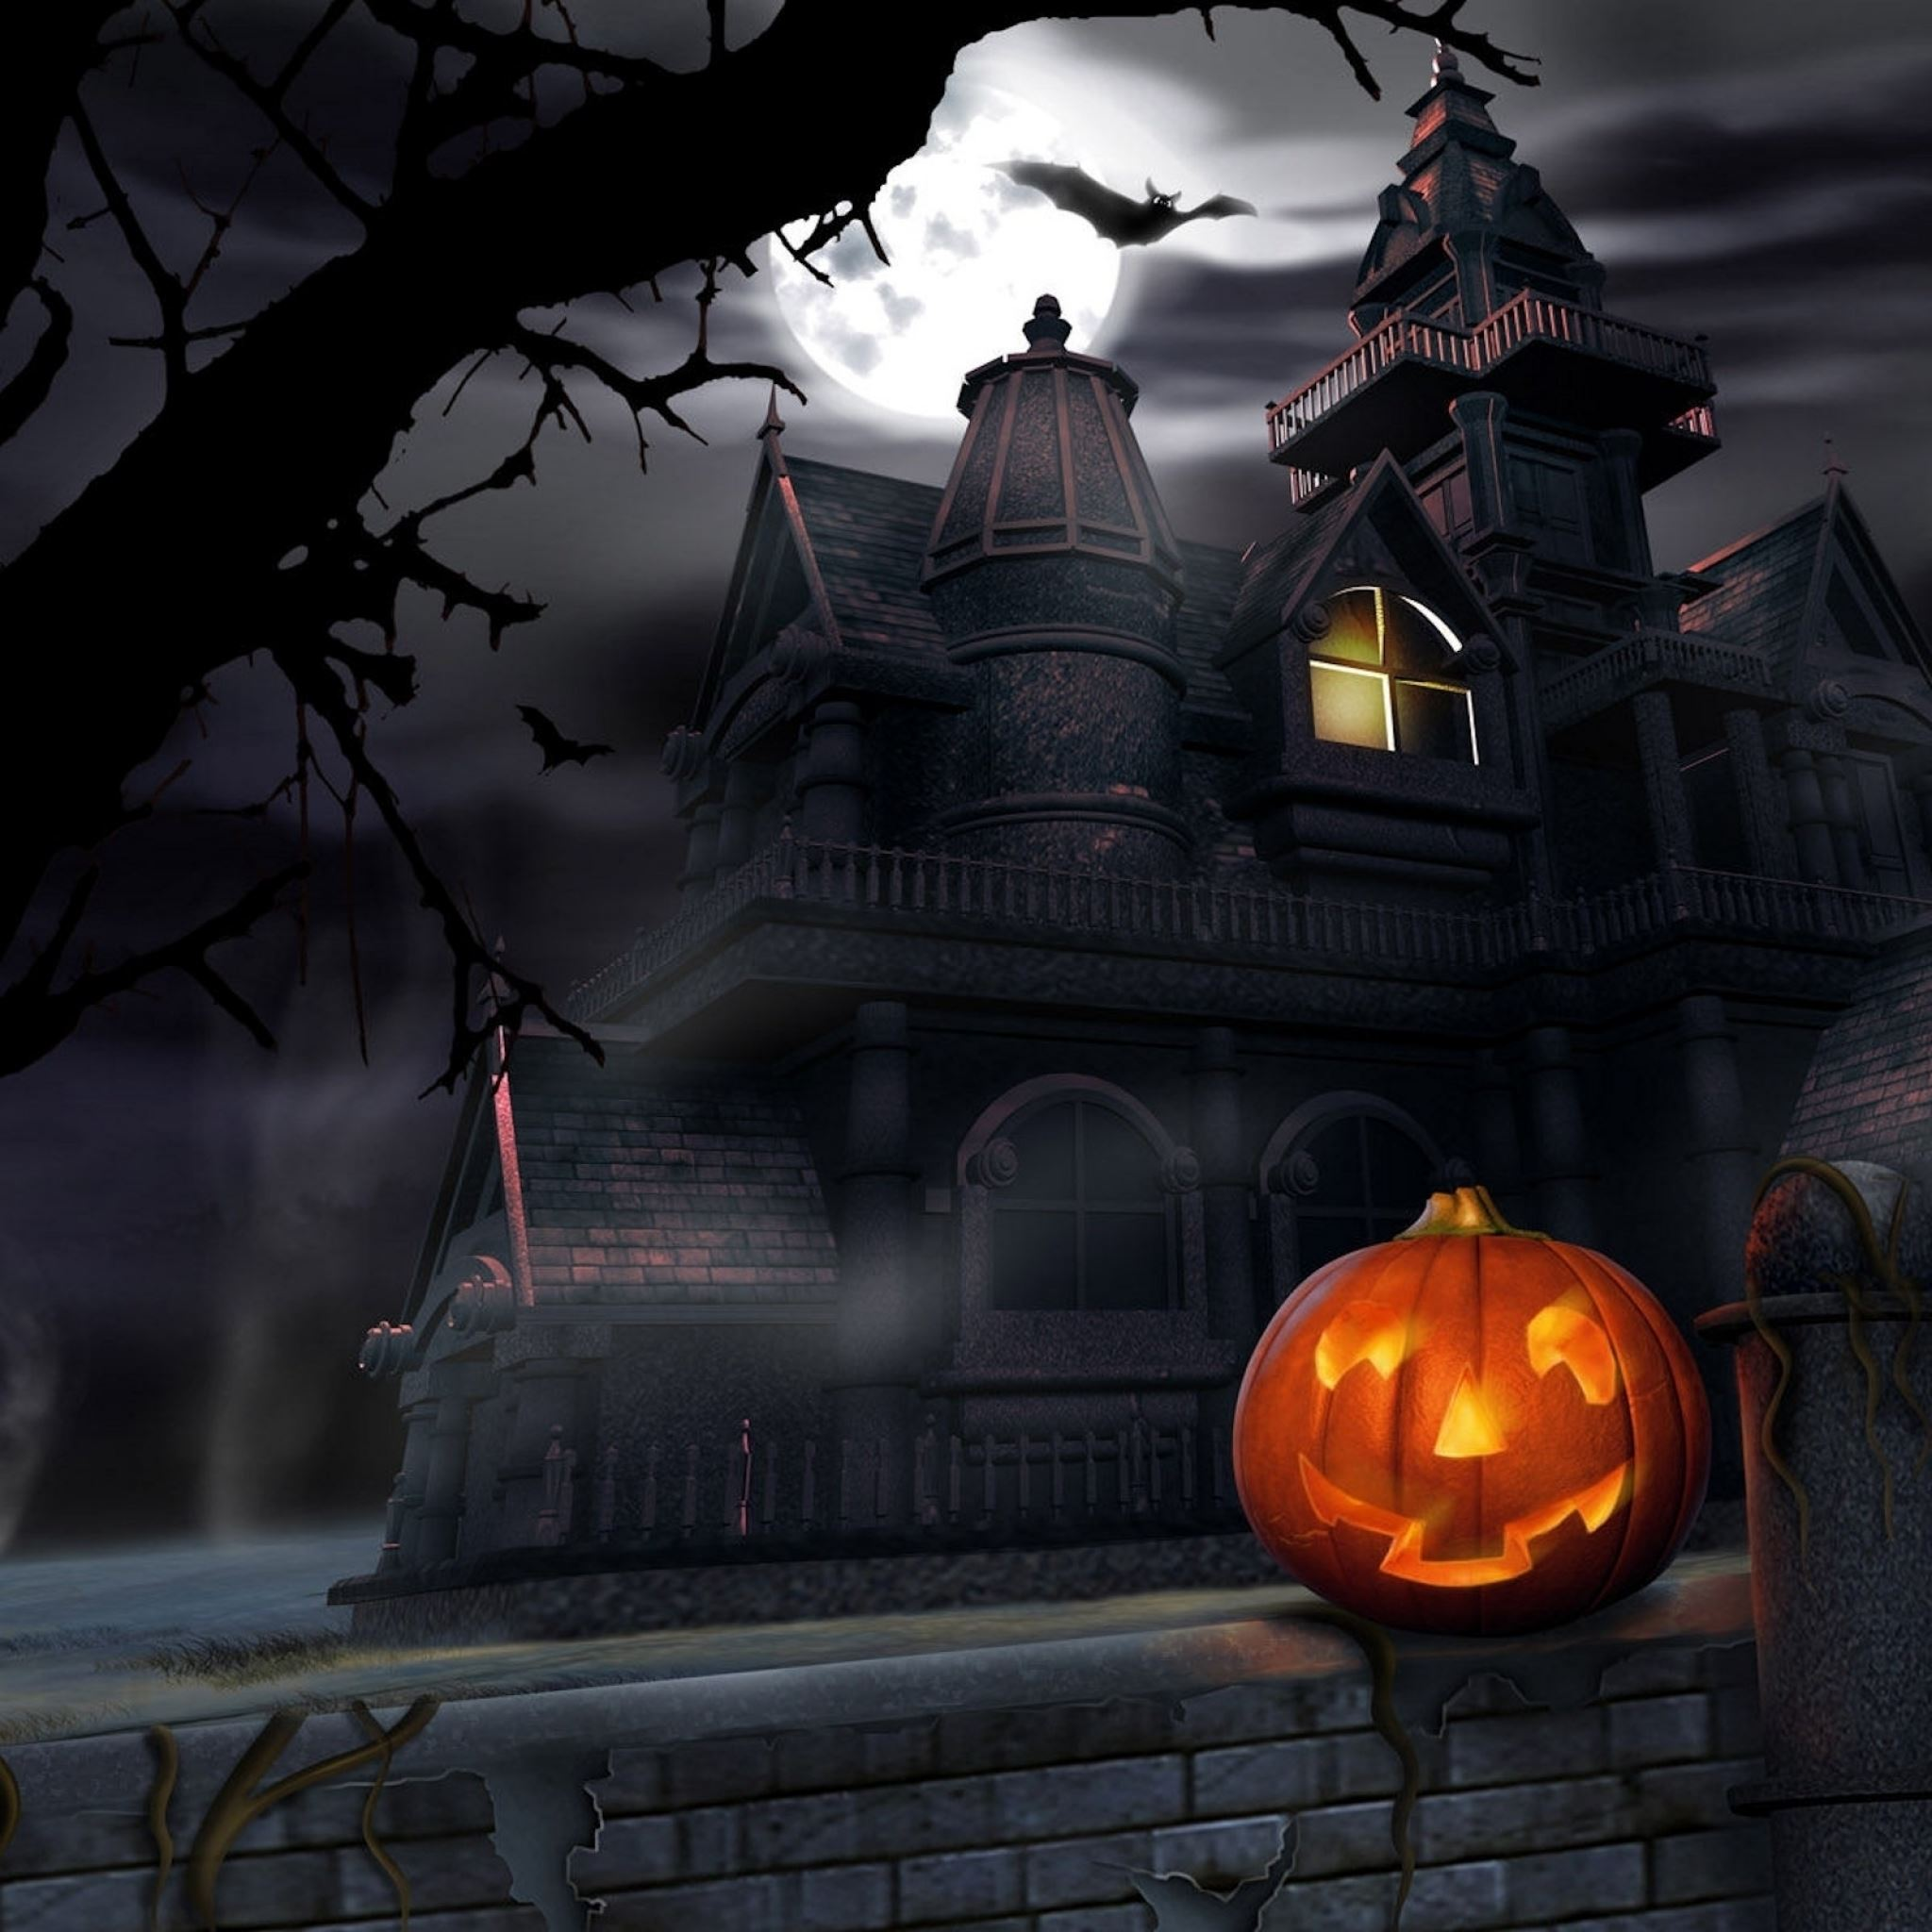 haunted house halloween party trick or treat iPad Air wallpaper